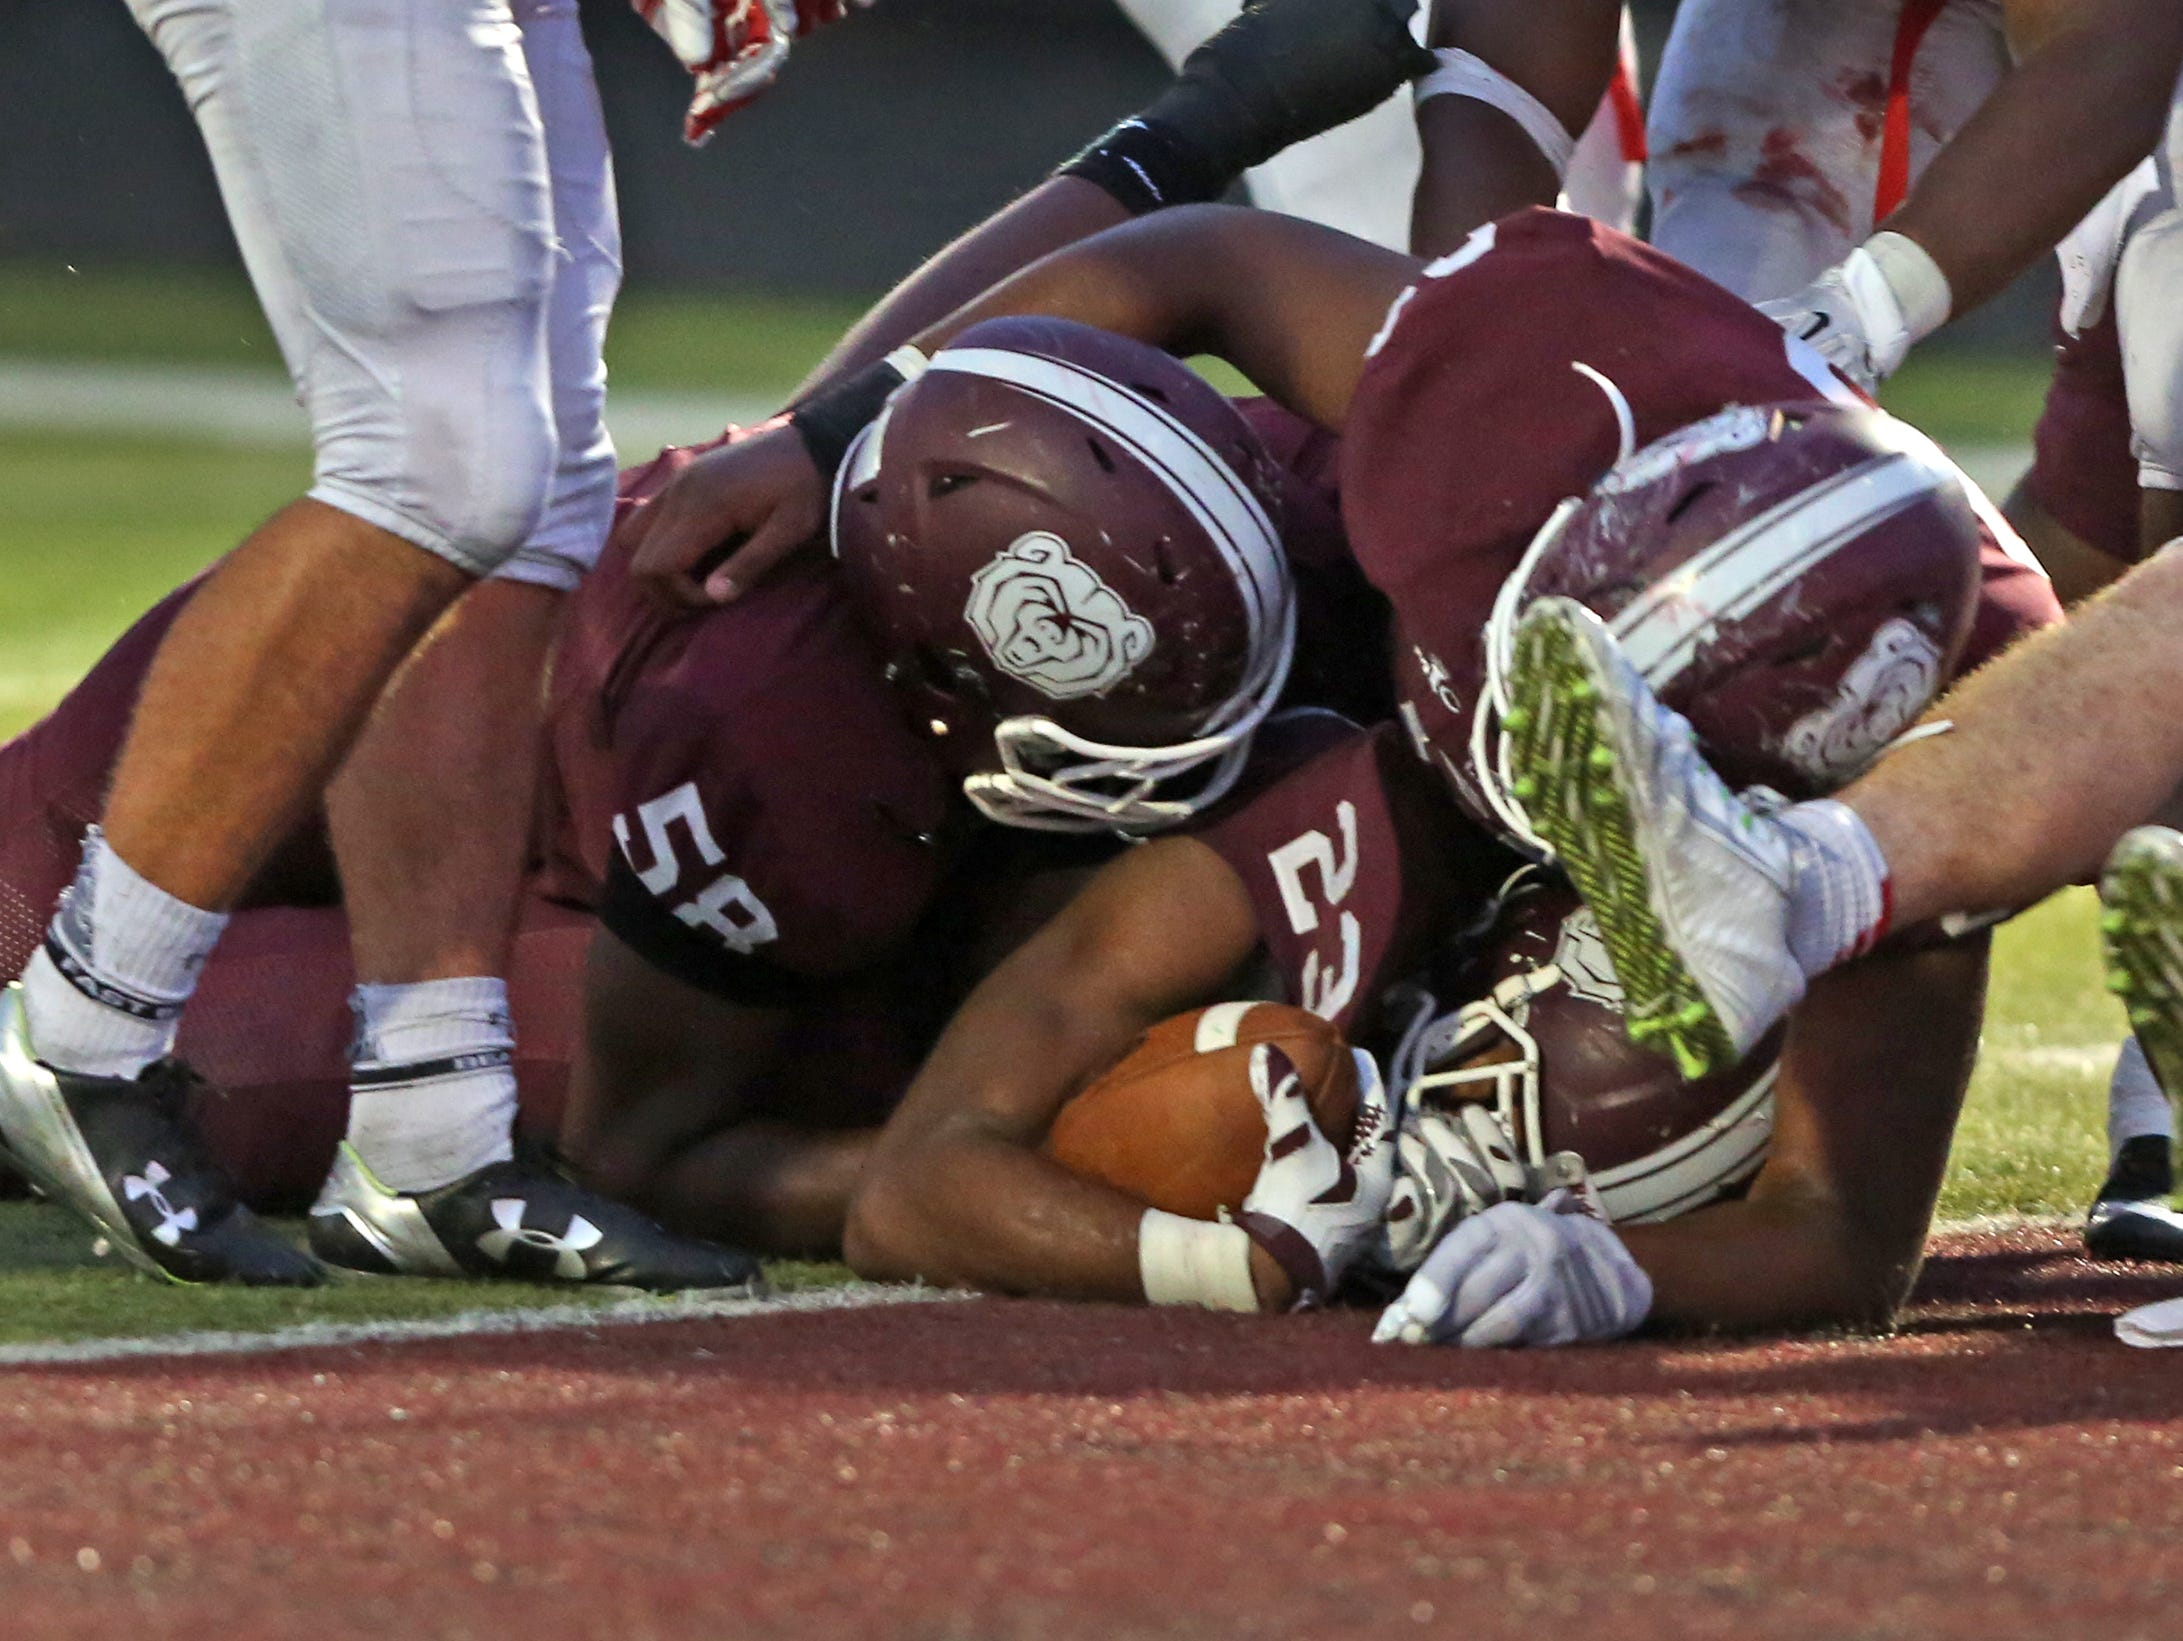 Lawrence Central's #23 Gerrid Doaks crosses the line for a touchdown during the Center Grove at Lawrence Central football game, Friday, September 25, 2015. Lawrence Central led 12-7 by halftime.